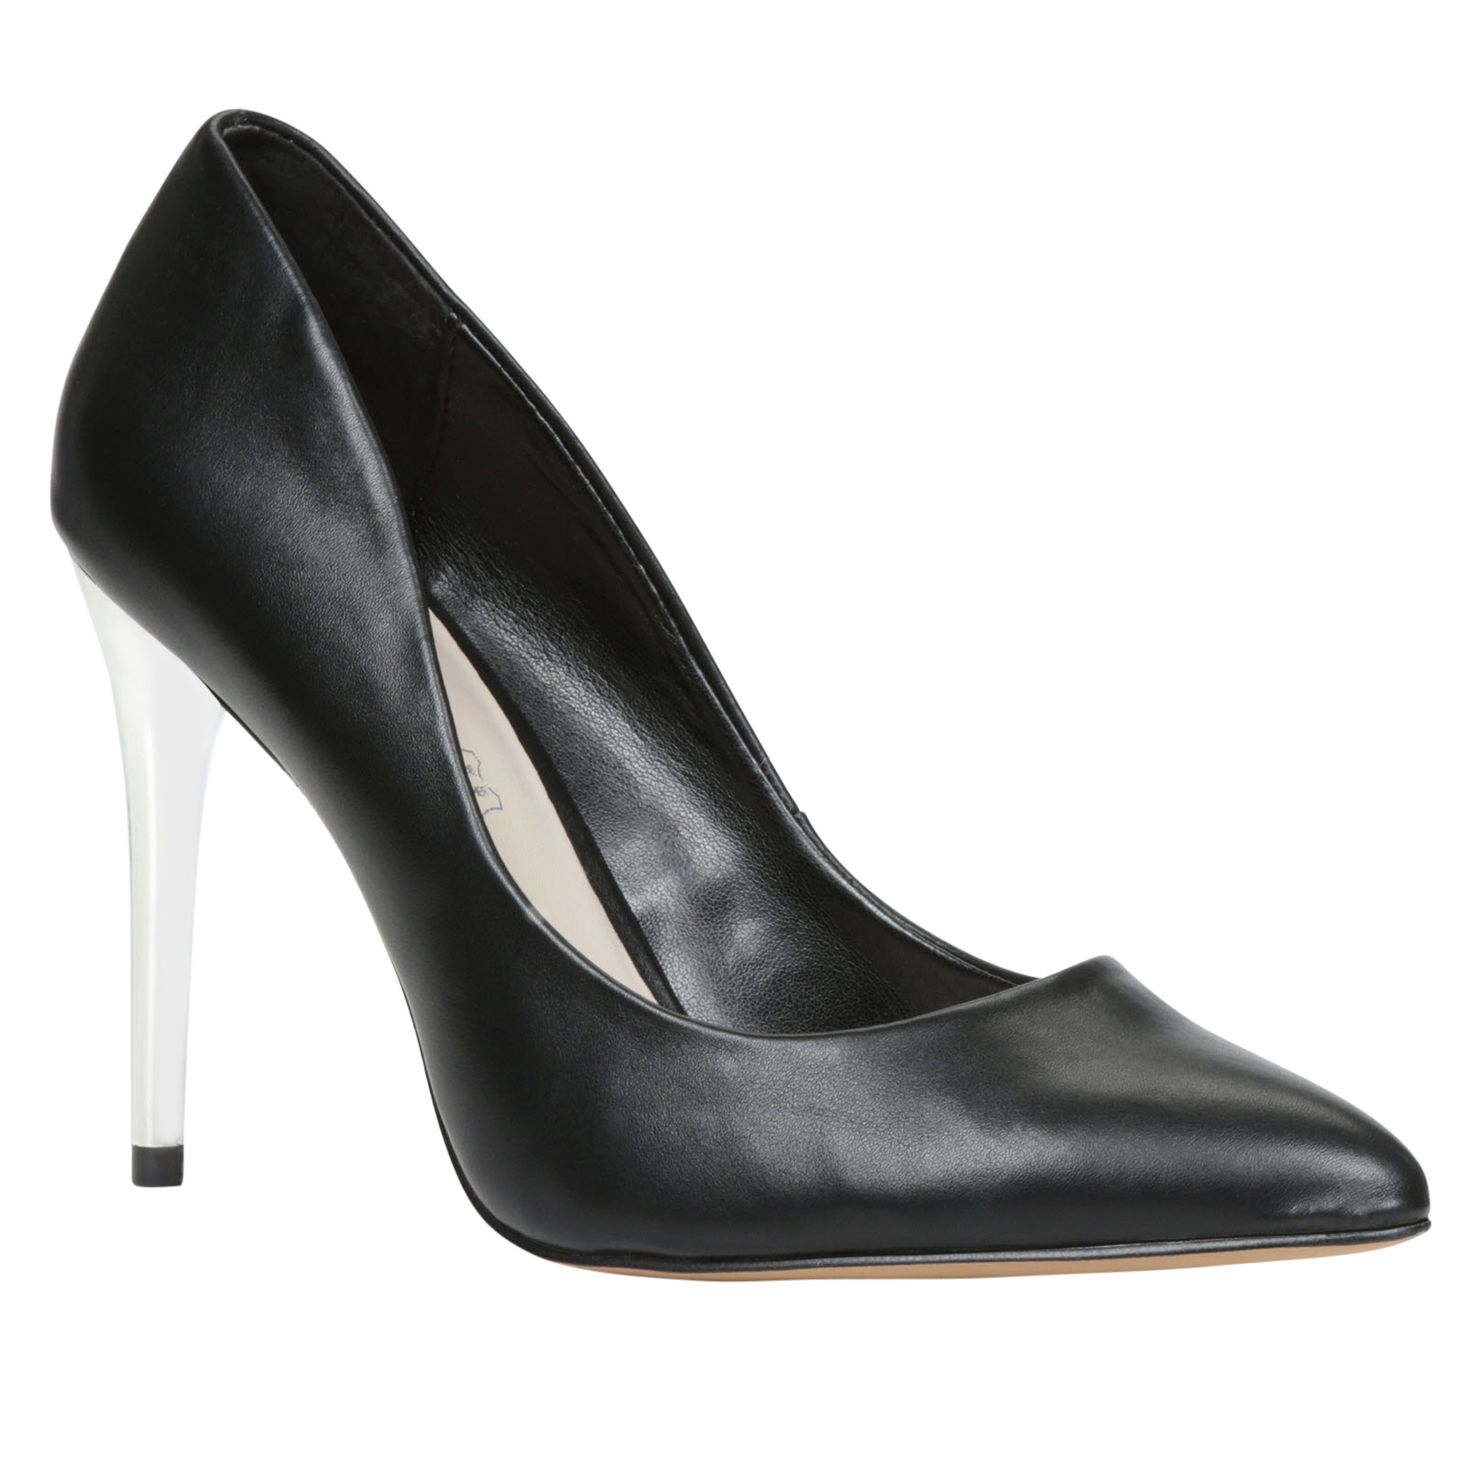 Meskill pointed toe court shoes